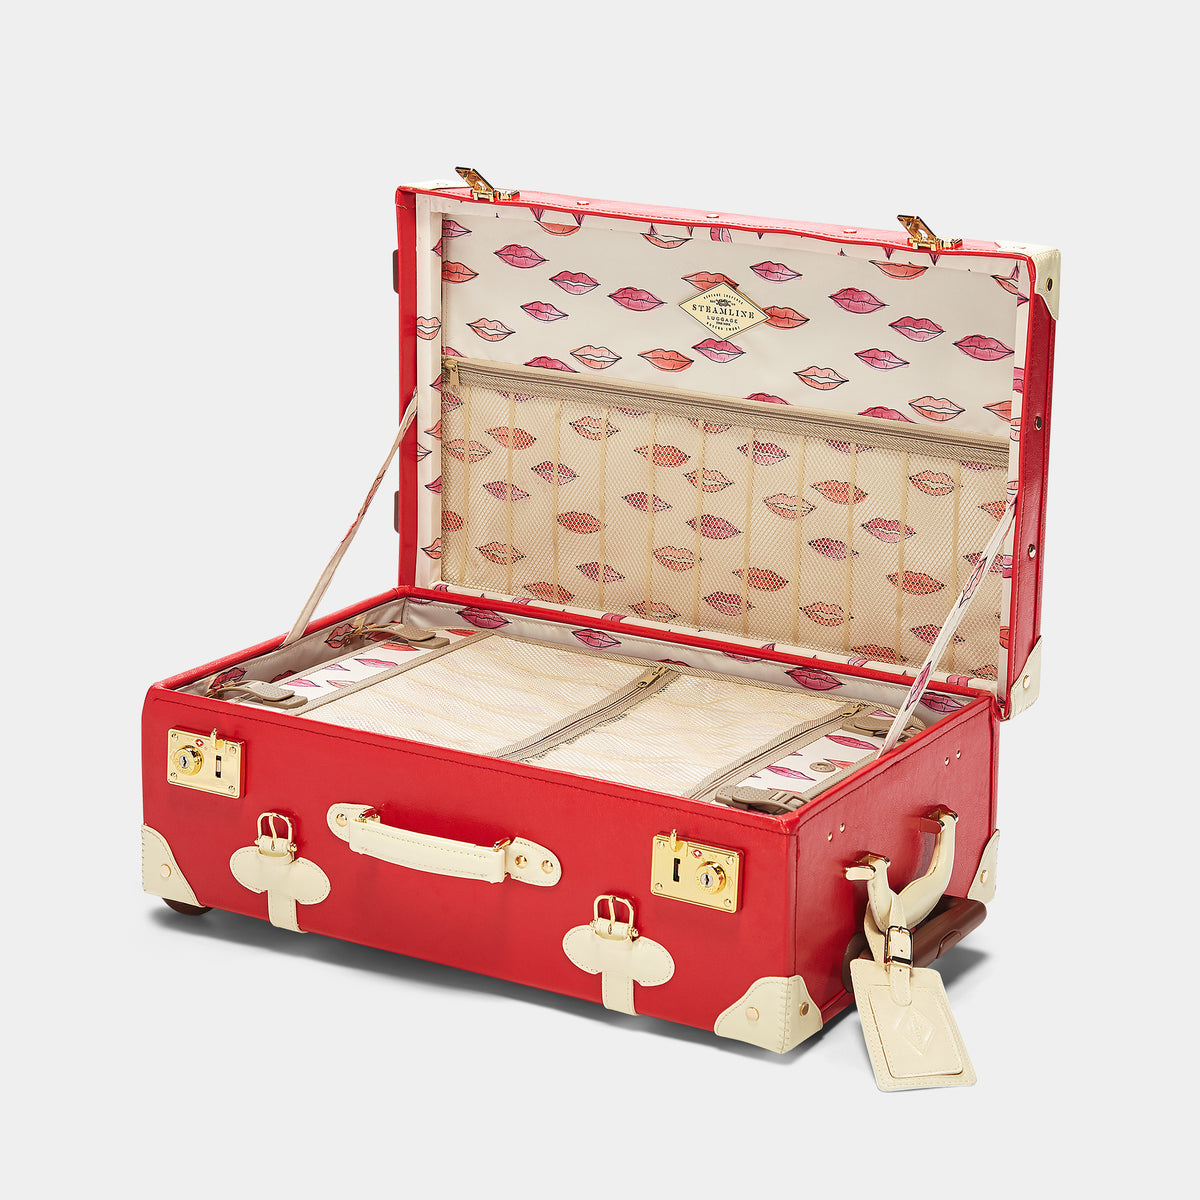 The Entrepreneur Stowaway in Red Lip - Vintage-Inspired Vegan Luggage - Interior Front